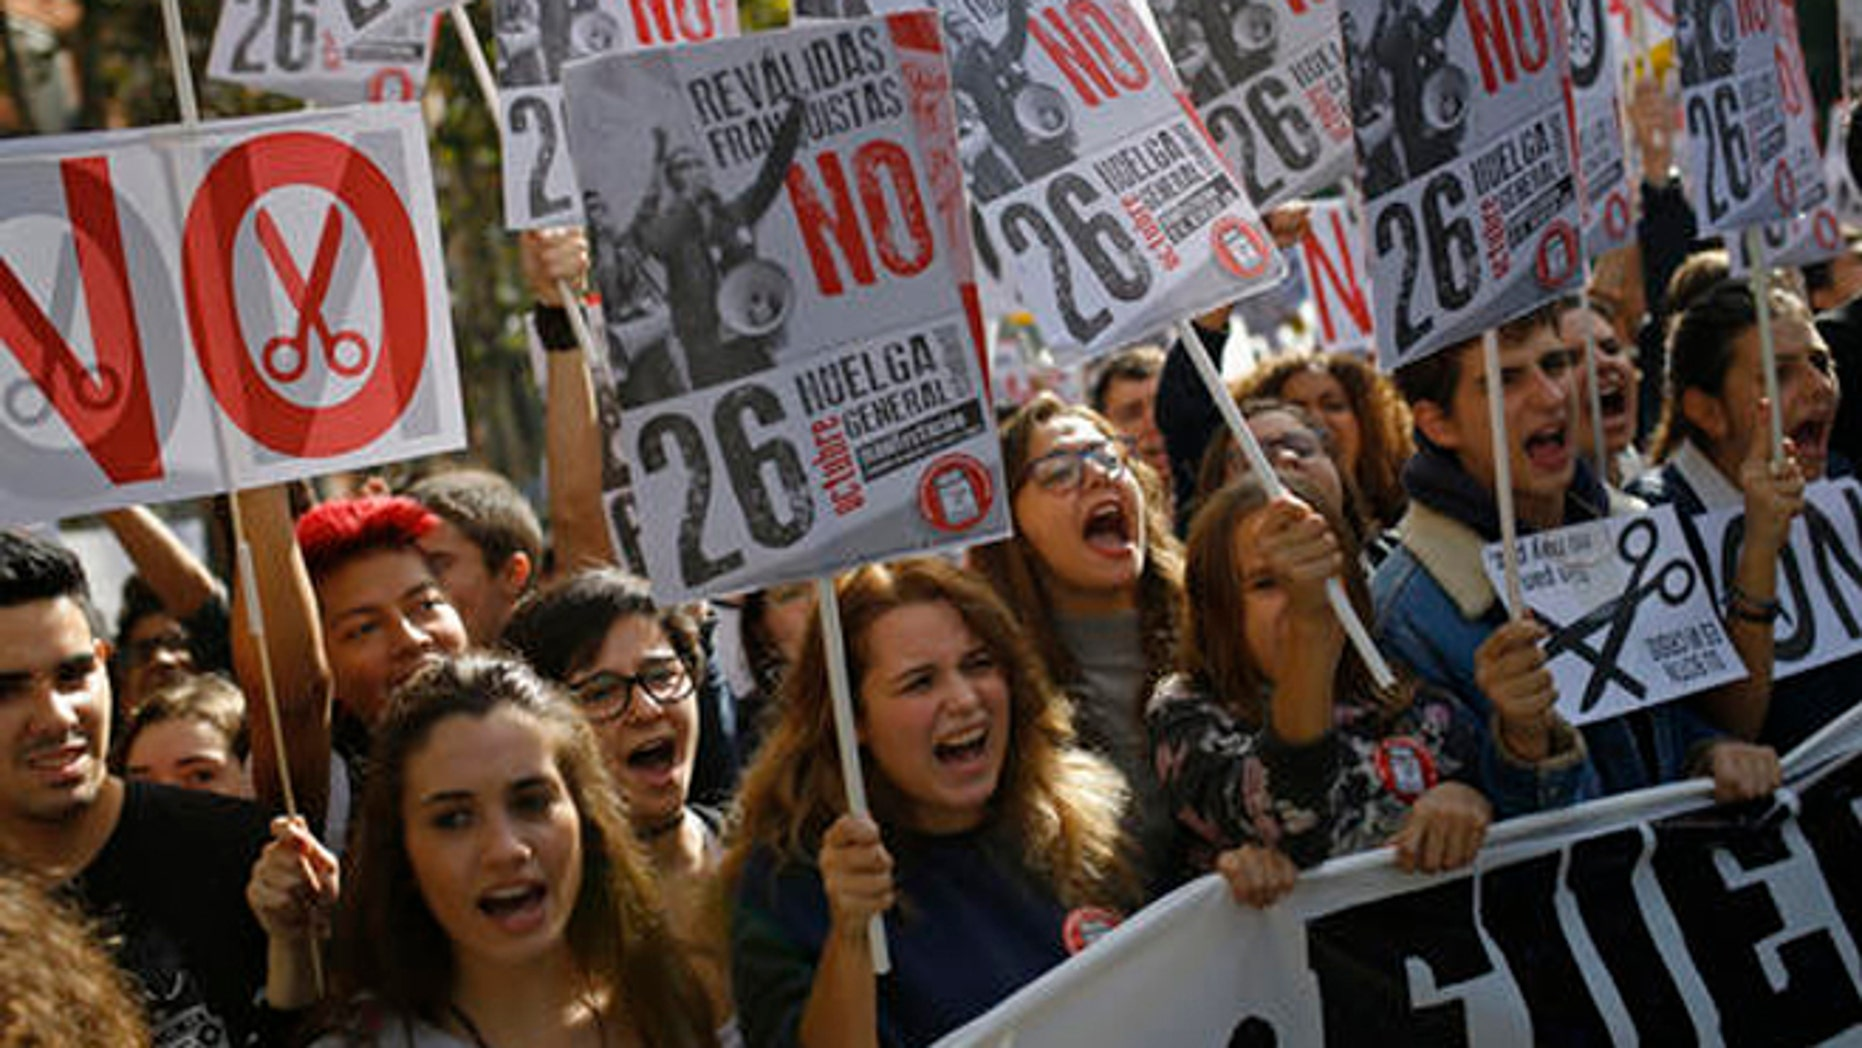 EDS NOTE : SPANISH LAW REQUIRES THAT THE FACES OF MINORS ARE MASKED IN PUBLICATIONS WITHIN SPAIN. High school student march during a demonstration in Madrid, Spain, Wednesday Oct. 26, 2016. The students who are on a one day strike are protesting about the country's education law that increases the number of annual exams. The education bill was brought in 2014 by the conservative Popular Party. Opposed by most other political parties and many teacher and parent groups, it increases the number of annual exams.The government claimed it was aimed at stemming Spain's school dropout rate. Banners read in Spanish; 'General Strike' and 'No to exam re-takes from the Franco era' . (AP Photo/Francisco Seco)